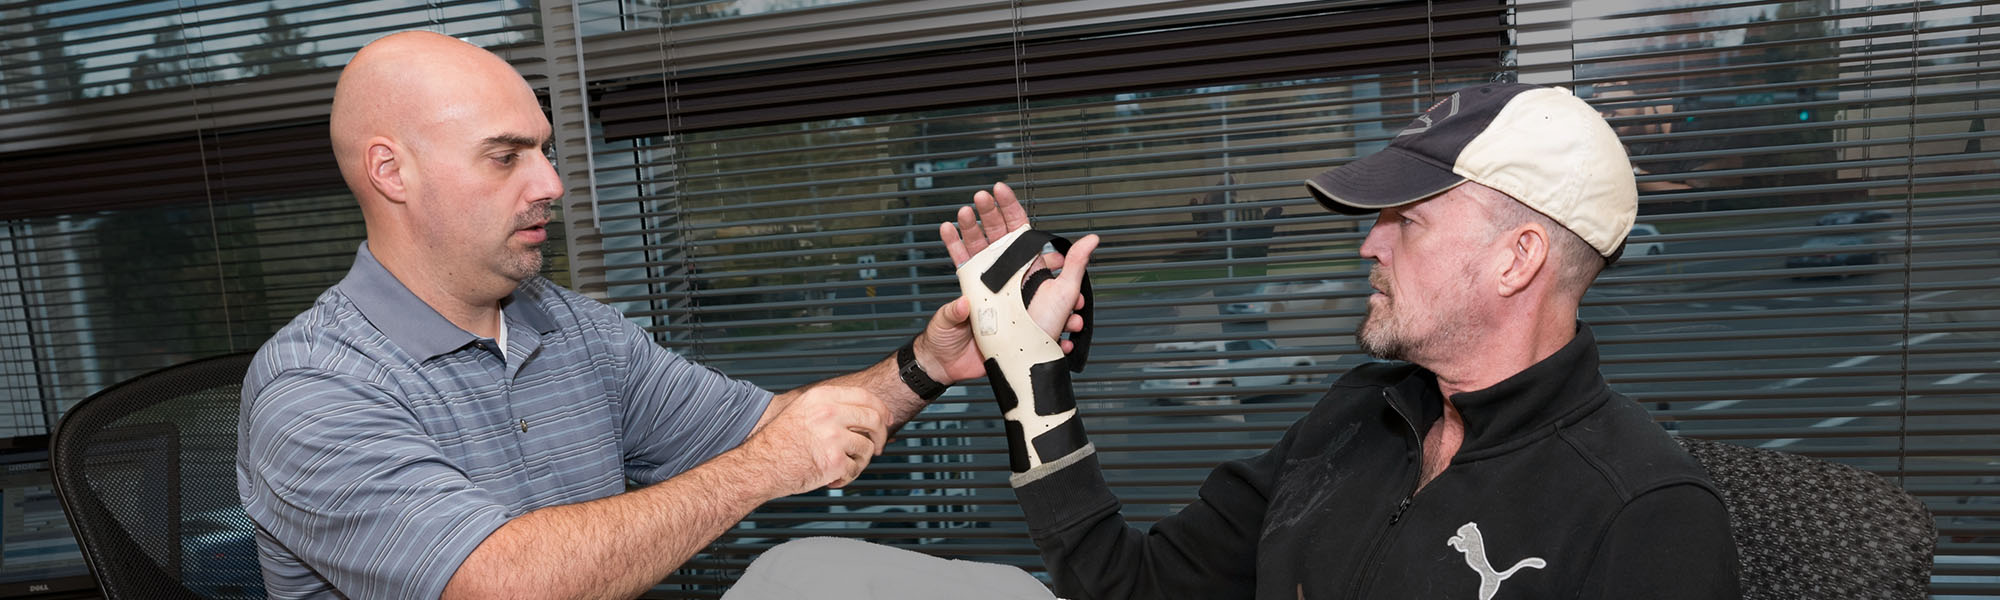 Armworks Services History Hand Therapy Rehabilitation